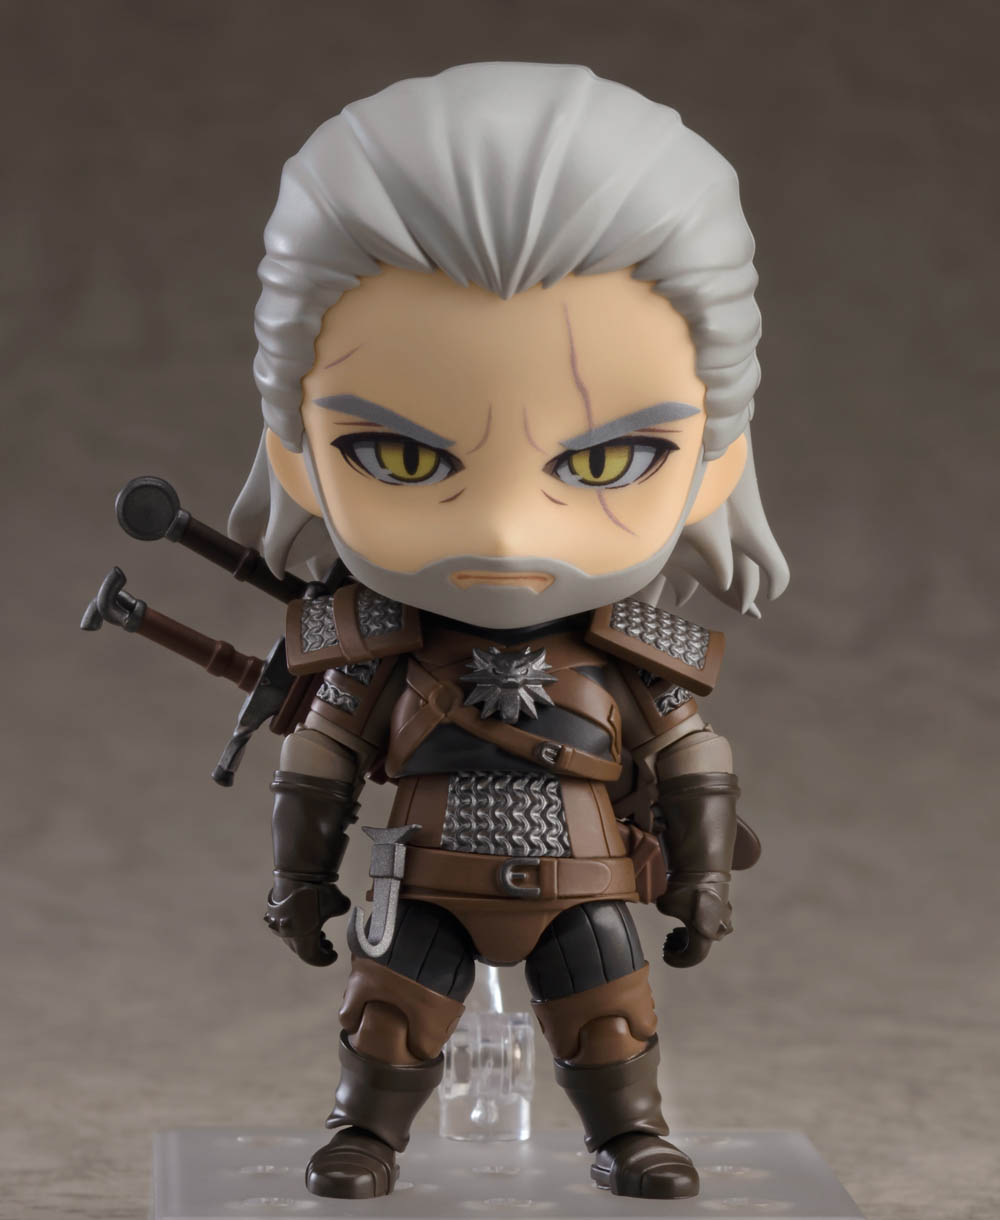 GSC Nendoroid Geralt - The Witcher Collectable